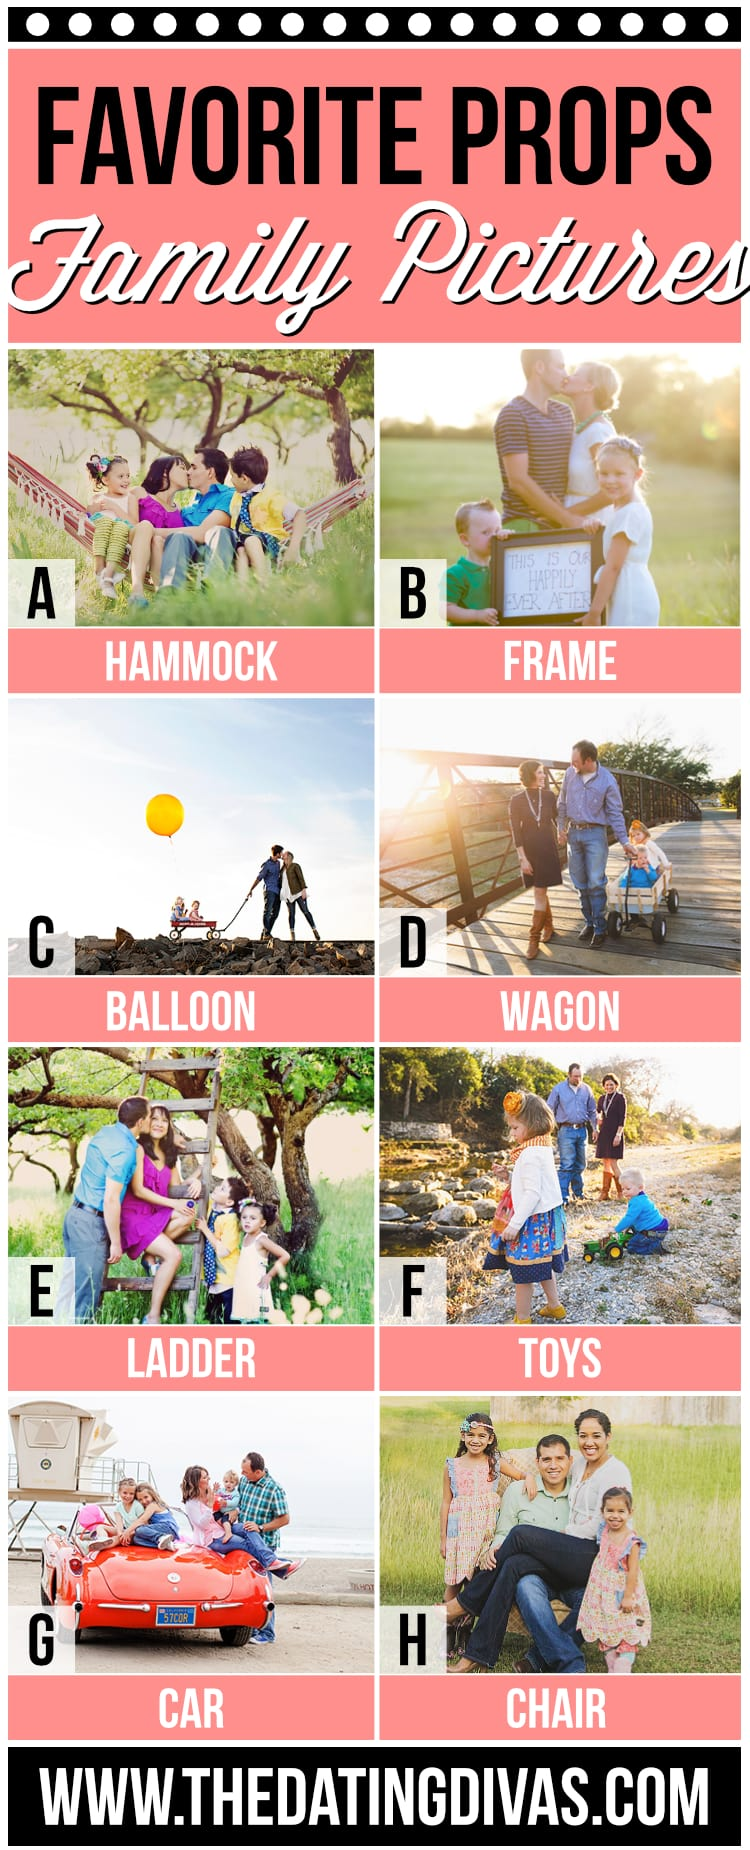 Family Photo Ideas for Props